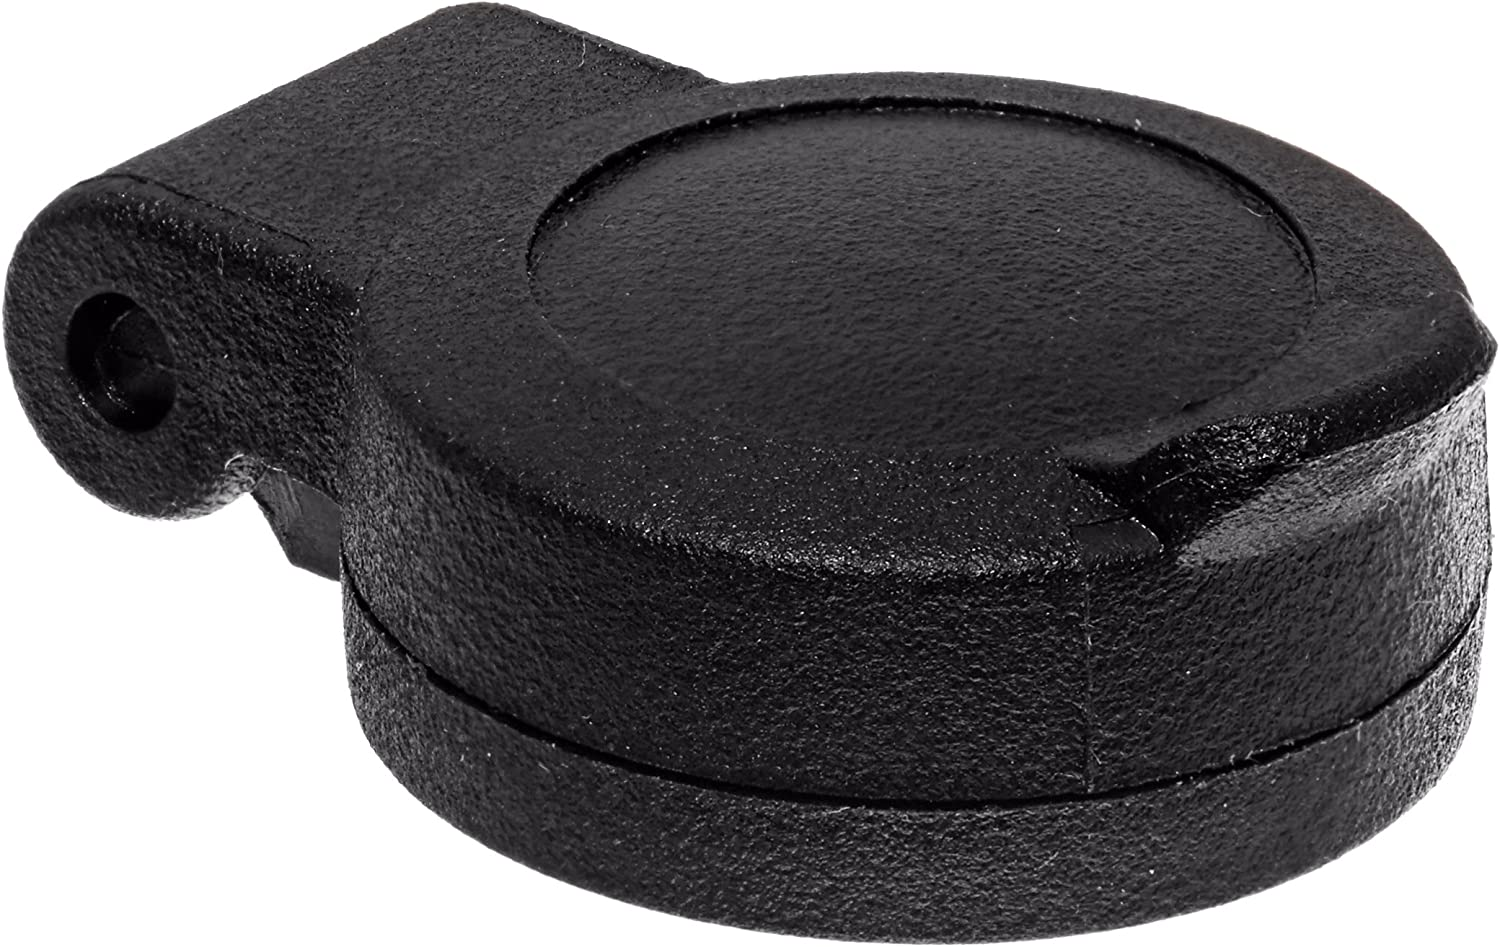 Can-Am 219400315 Black Replacement N-Touch Cover for Communication System DIN Connectors